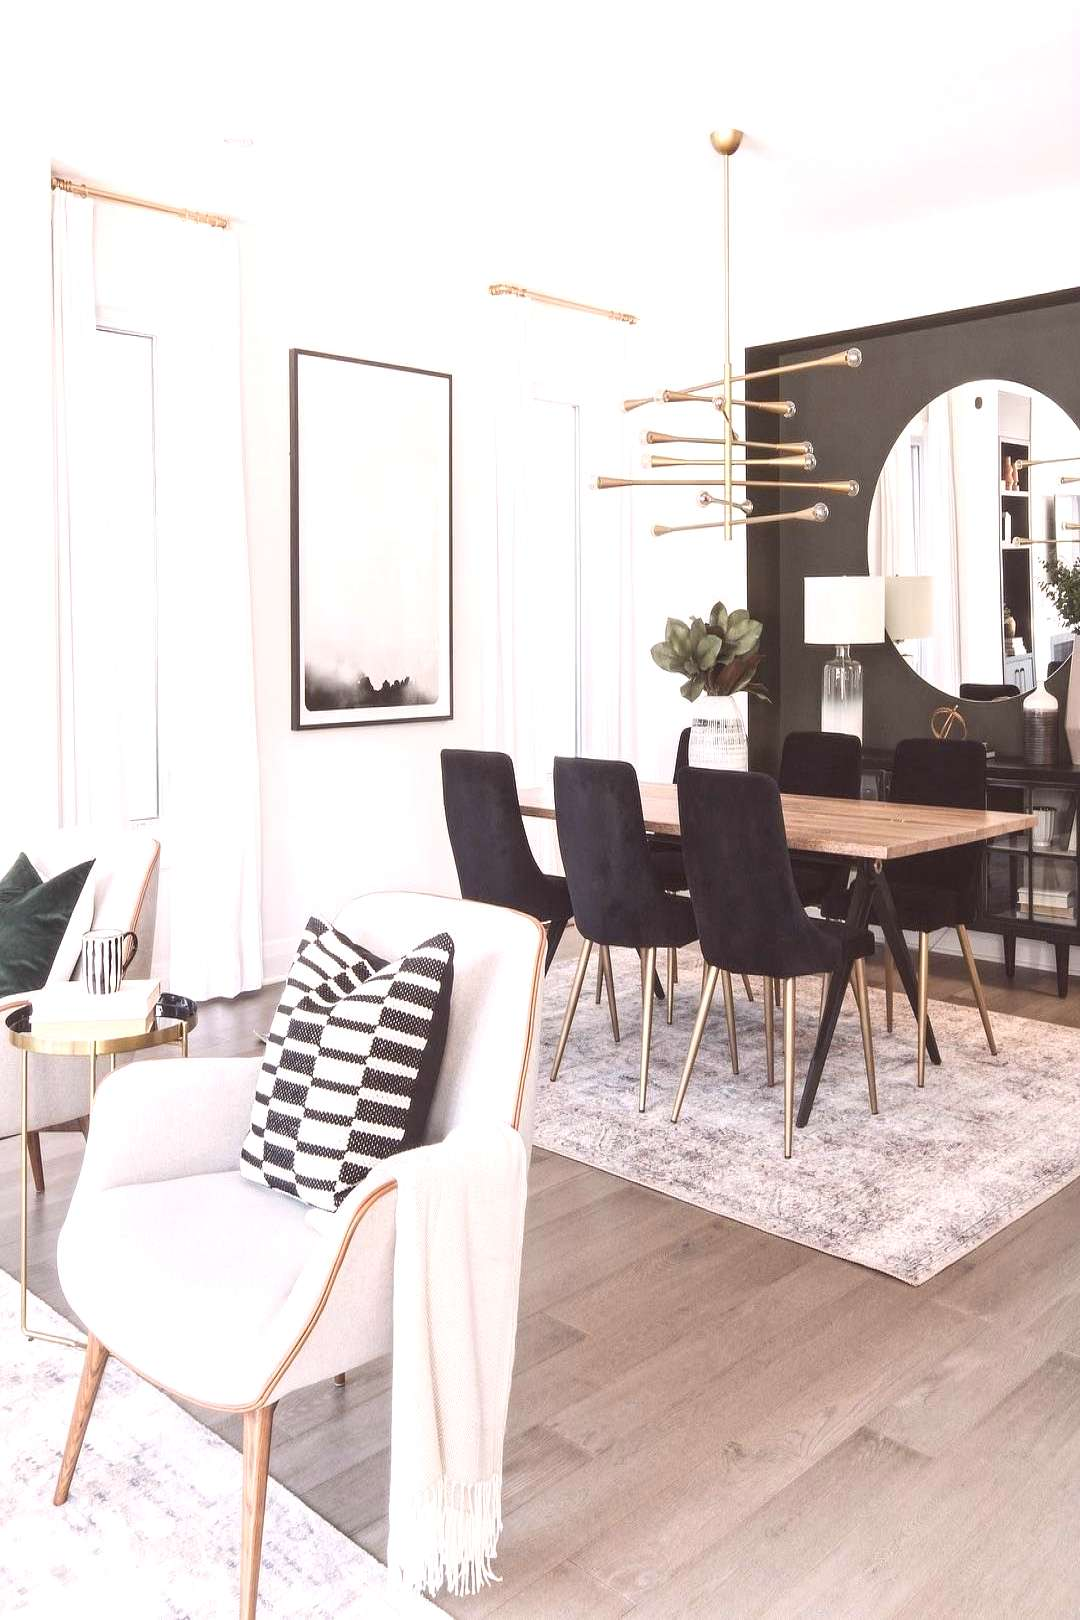 42 Inexpensive Dining Room Design Ideas For Your Dream House Stunning 42 Inexpensive Dining Room De